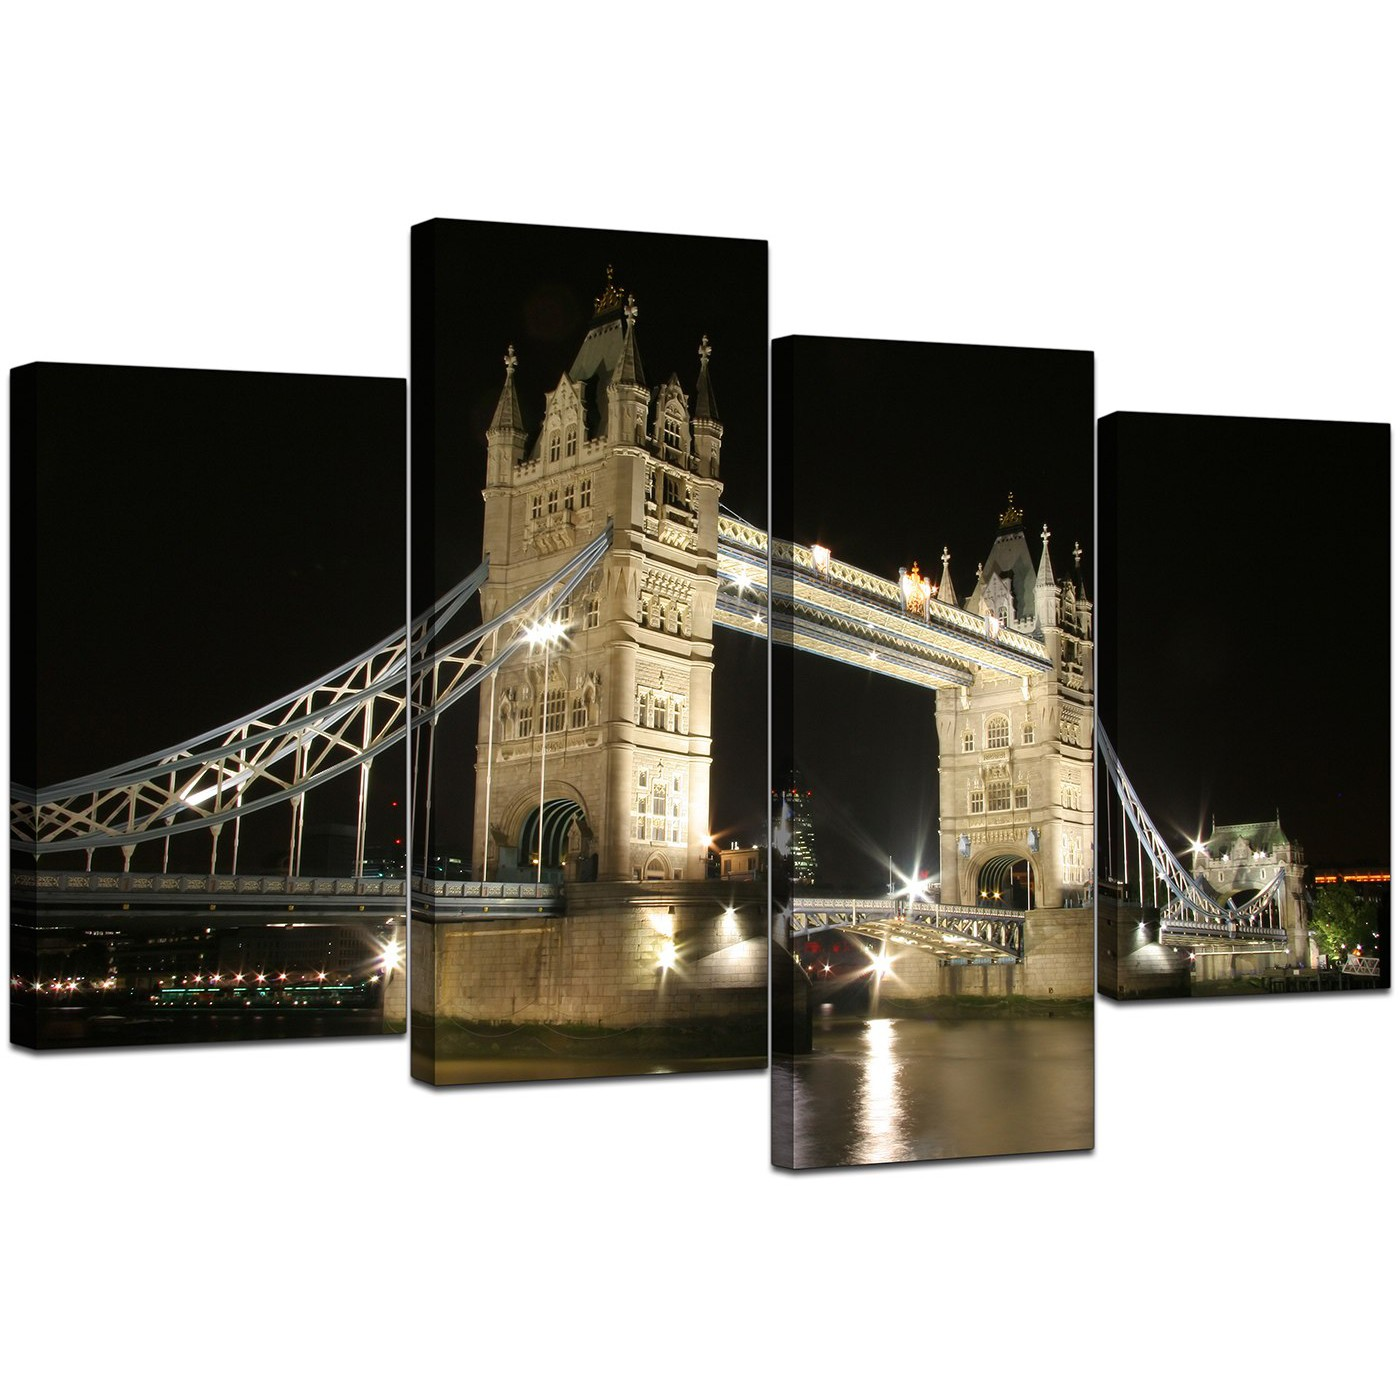 Display gallery item 5 · 4 part set of extra large black white canvas picture display gallery item 6